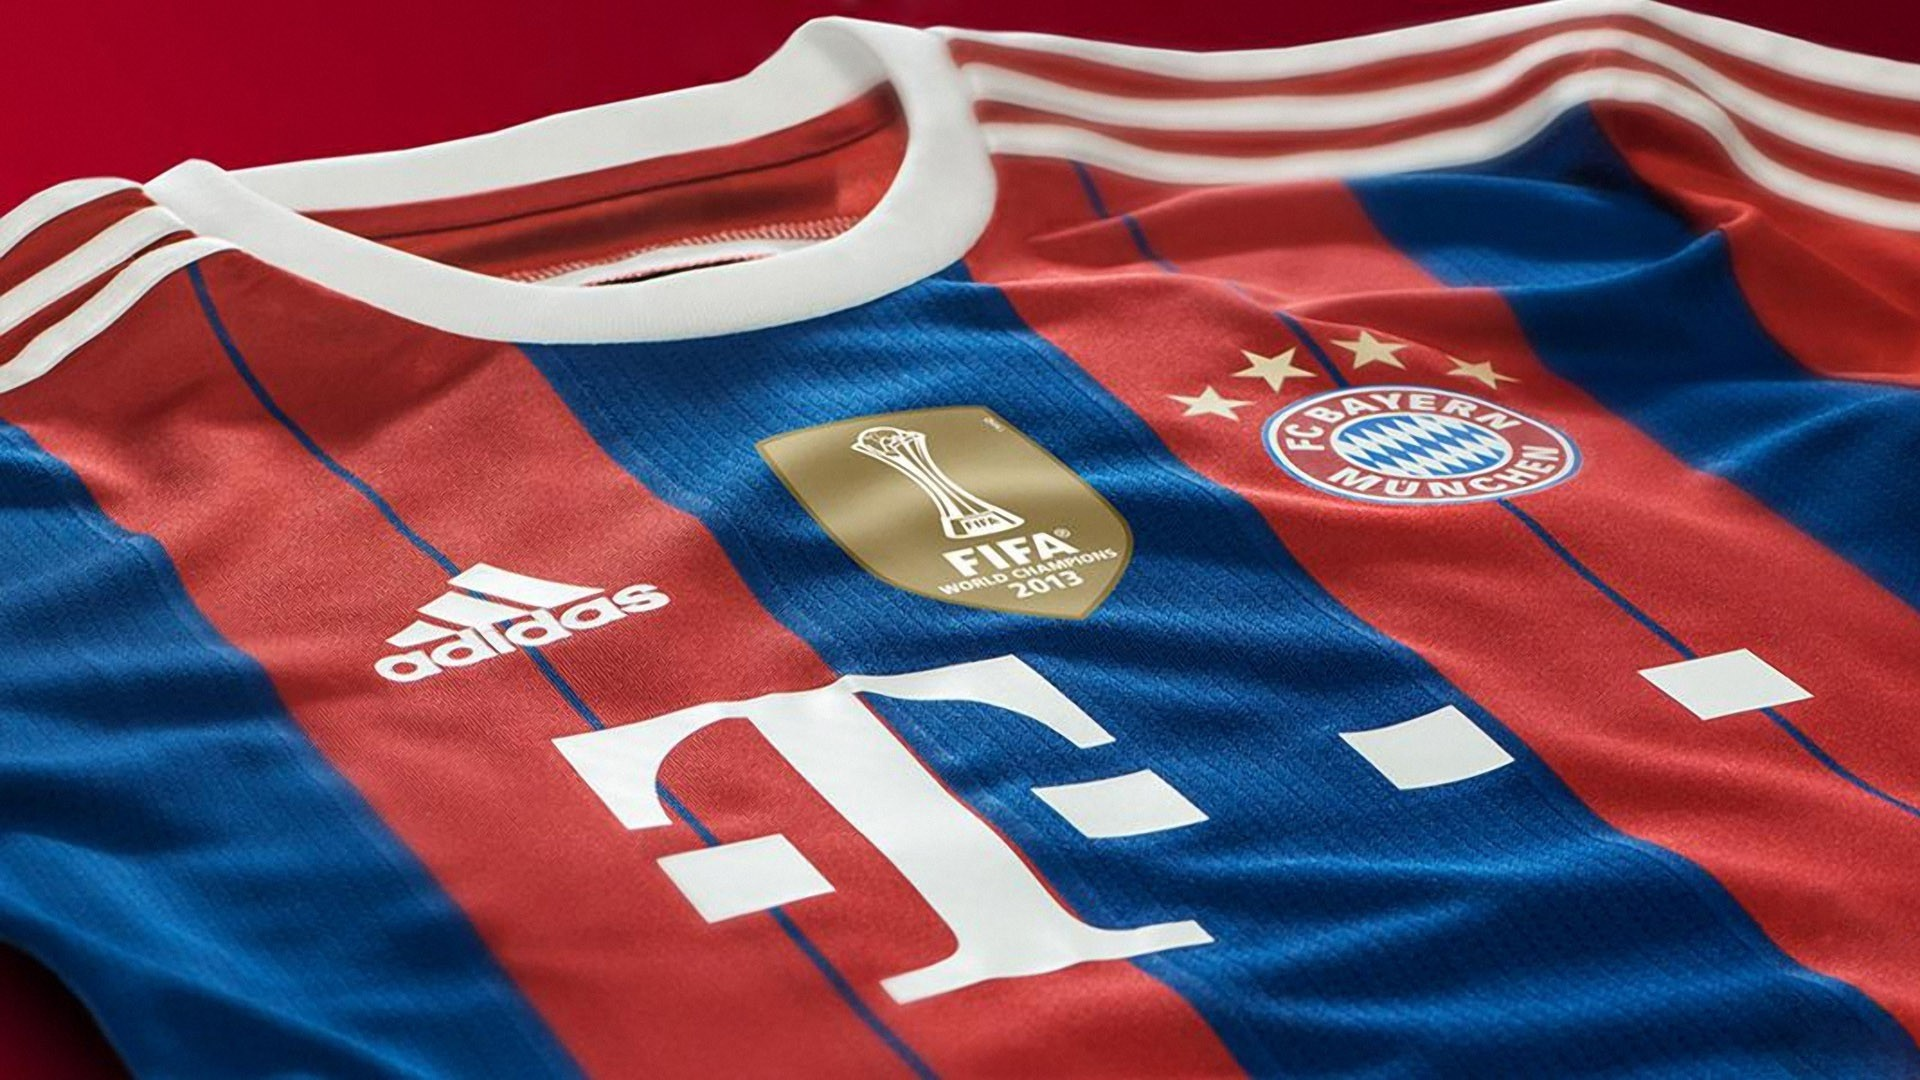 Bayern Munich Wallpapers 19 Images Wallpaperboat